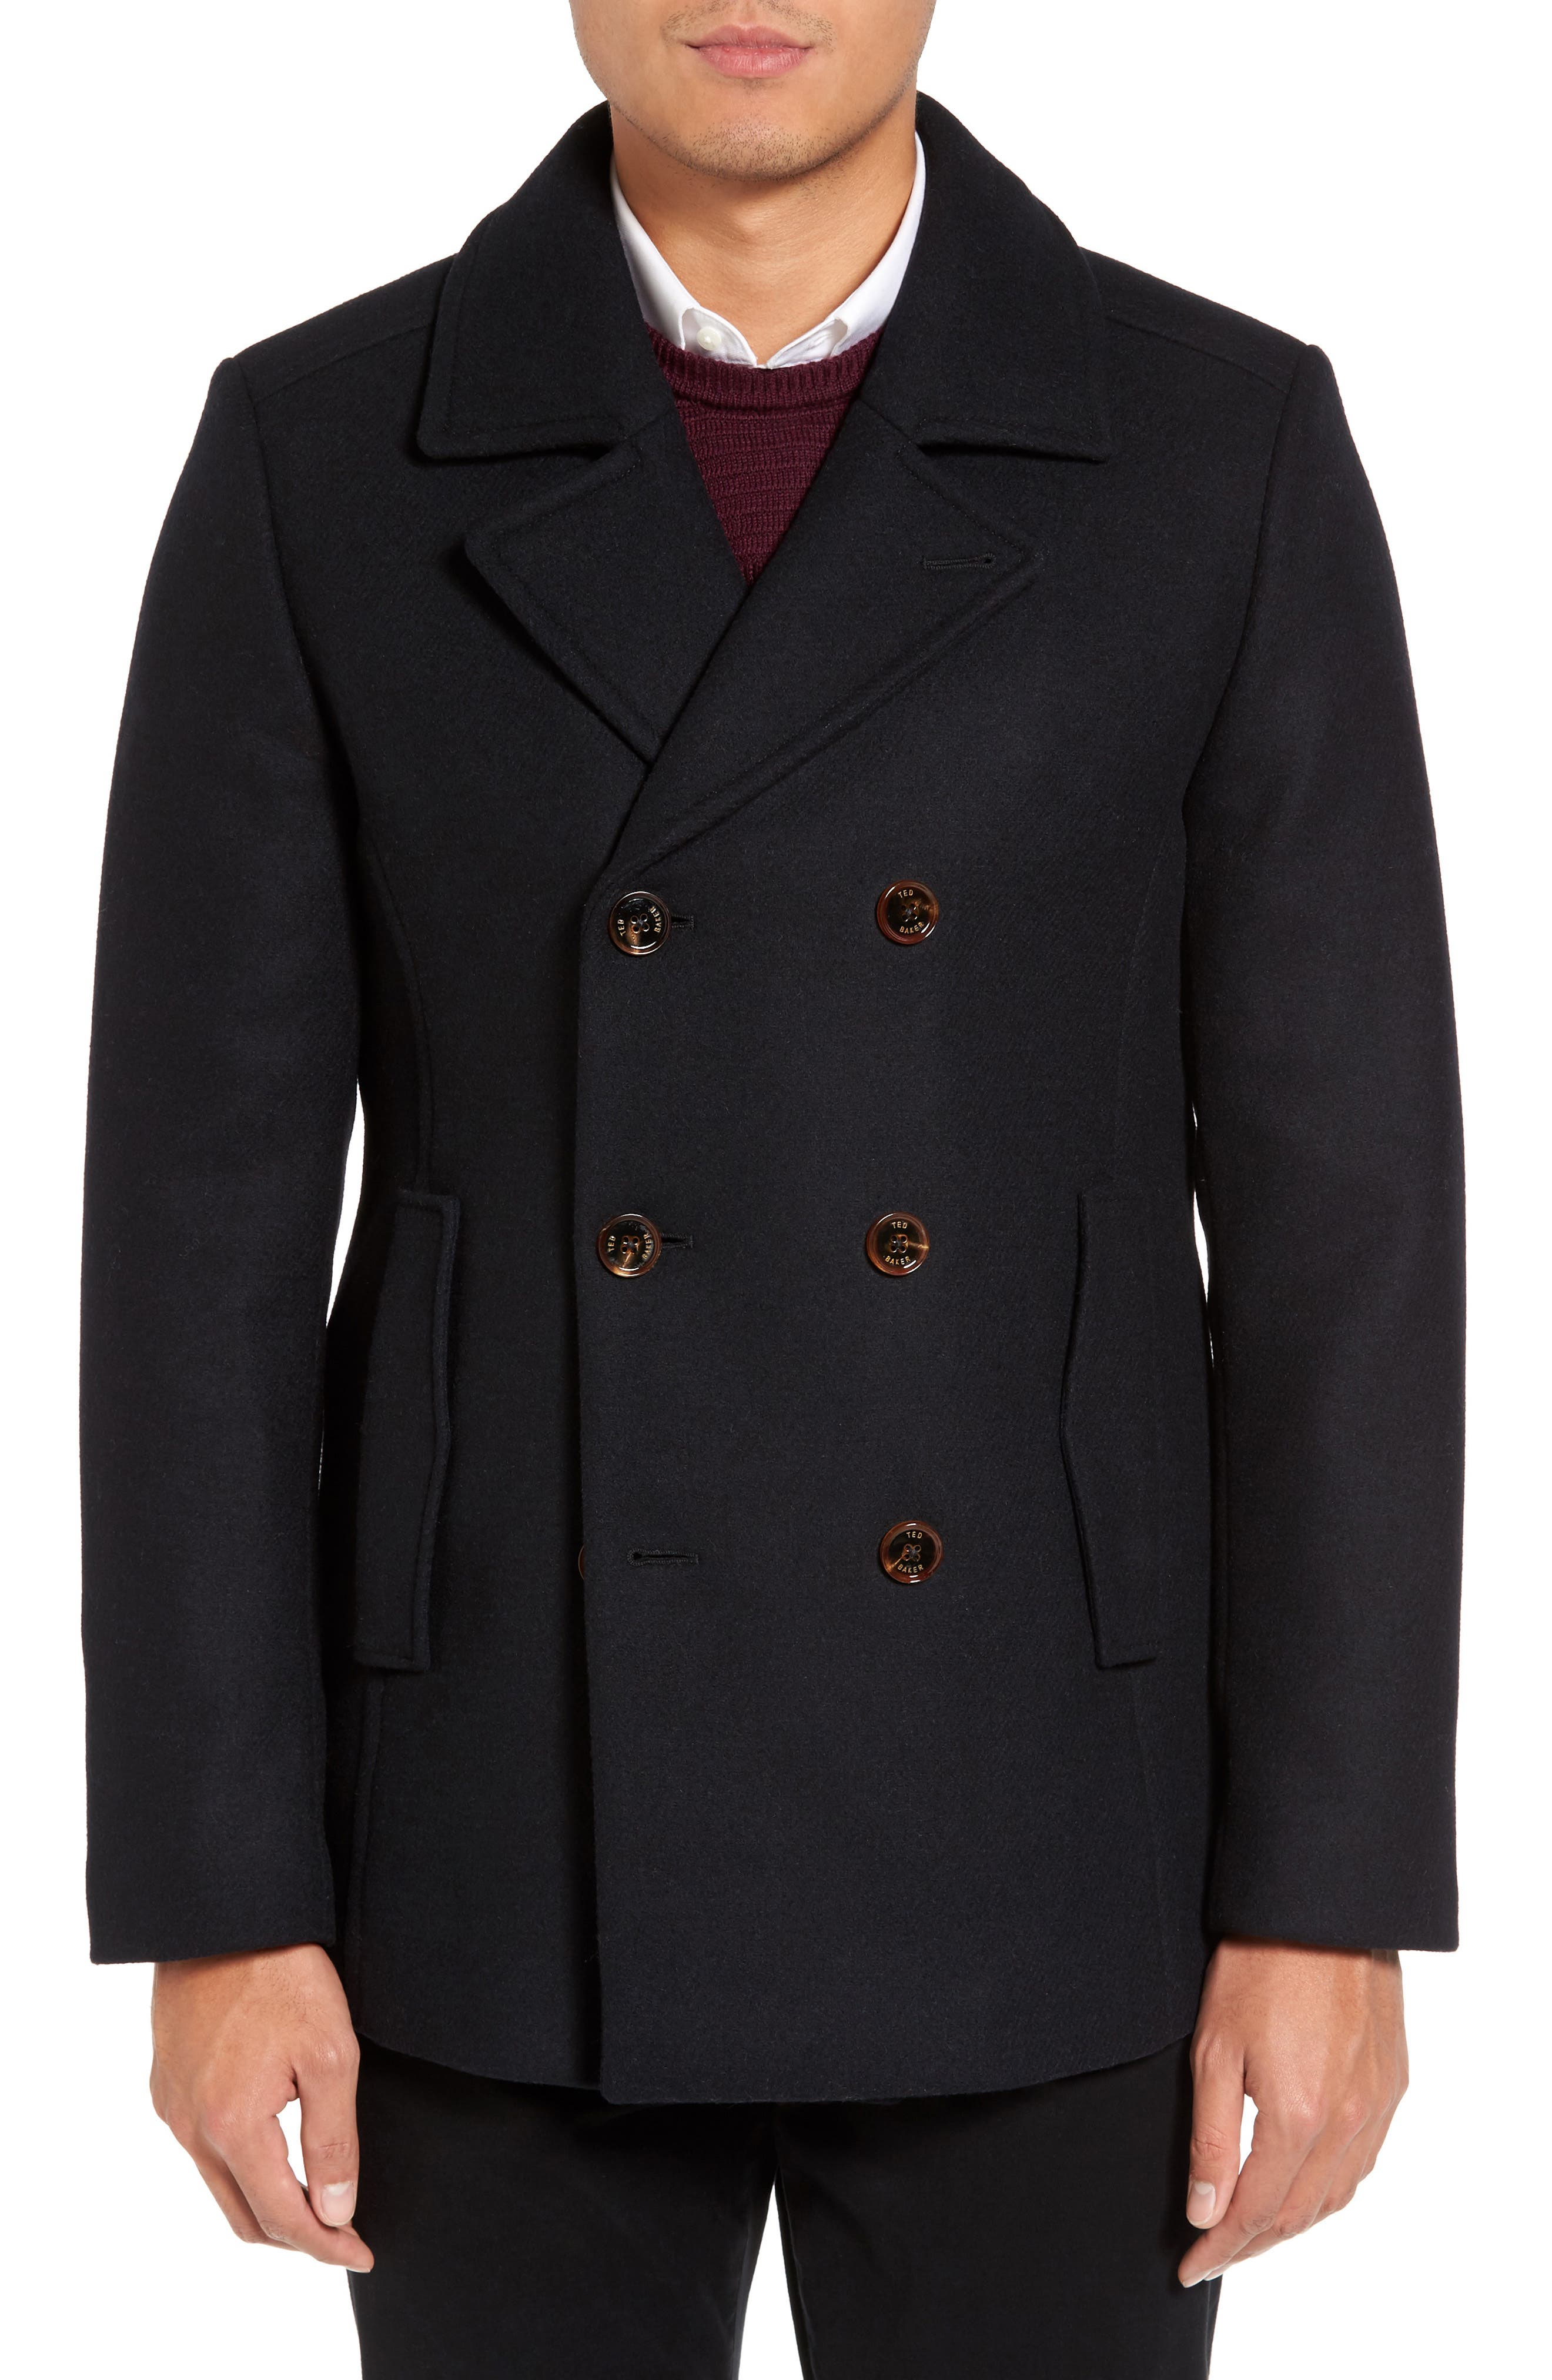 TED BAKER LONDON Wool Blend Peacoat, Main, color, 410